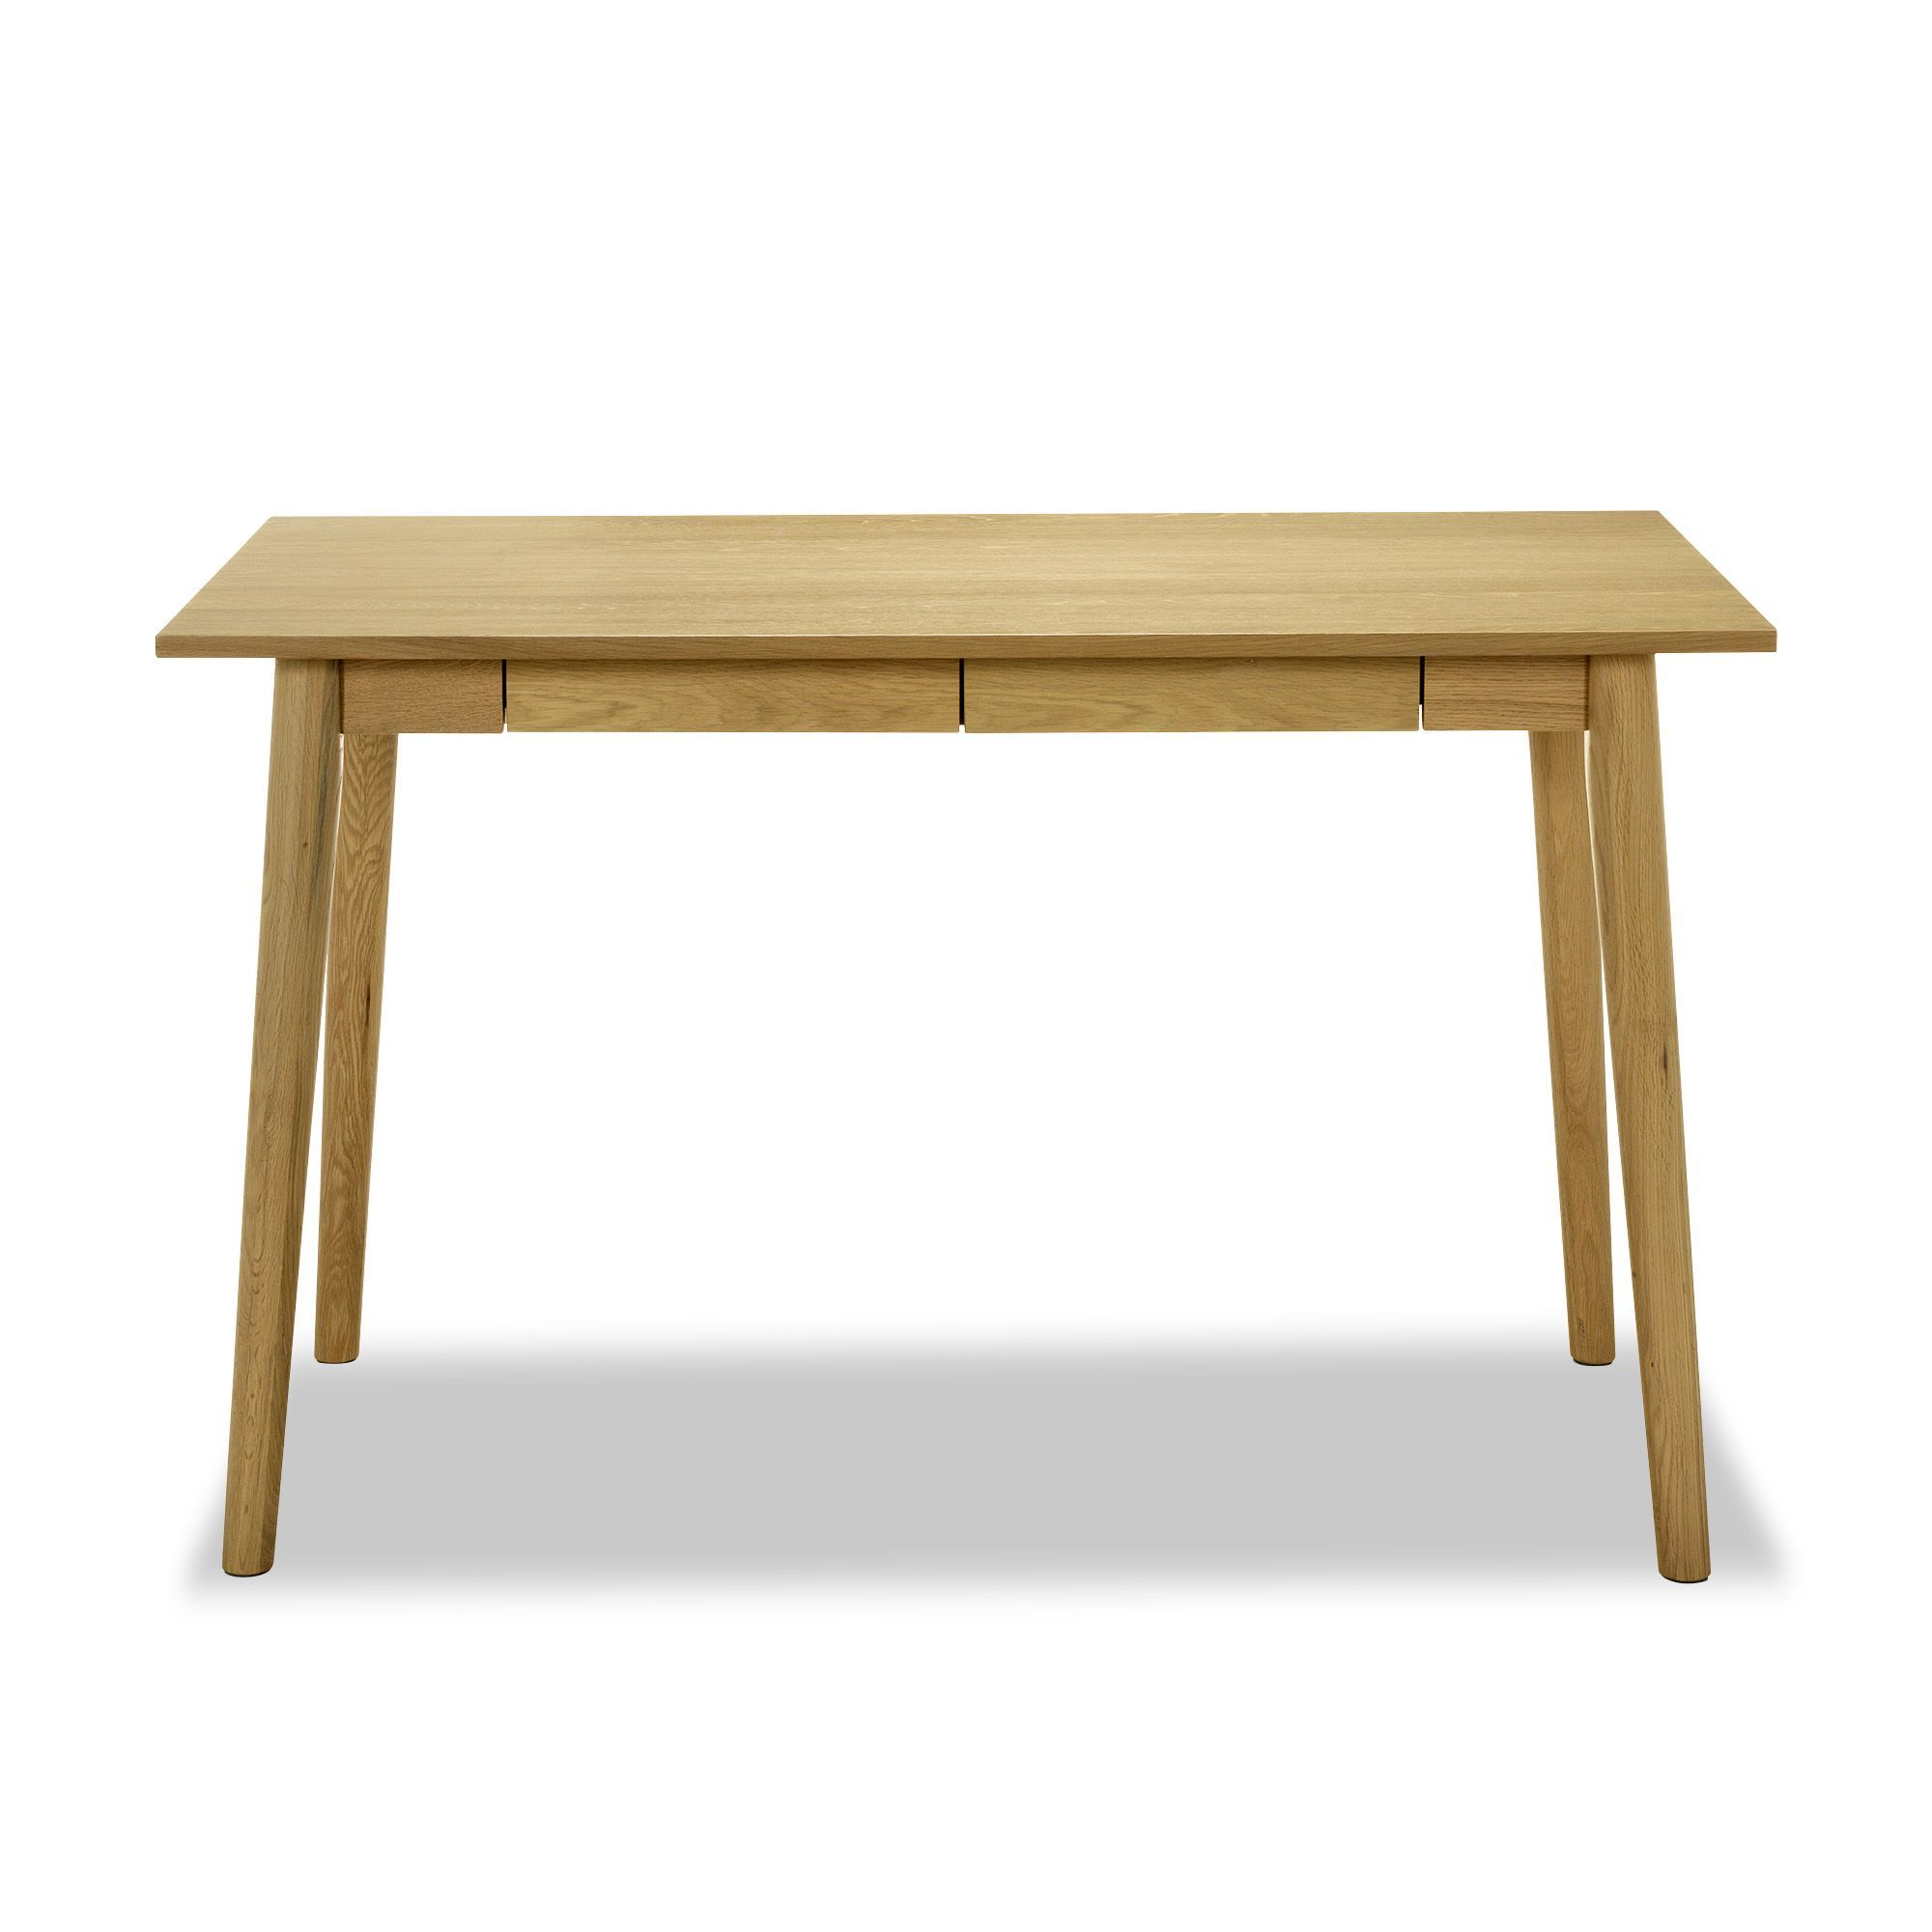 Meubles Nordi But Table Nordi Chêne Blanchi The Office Project Table Dining